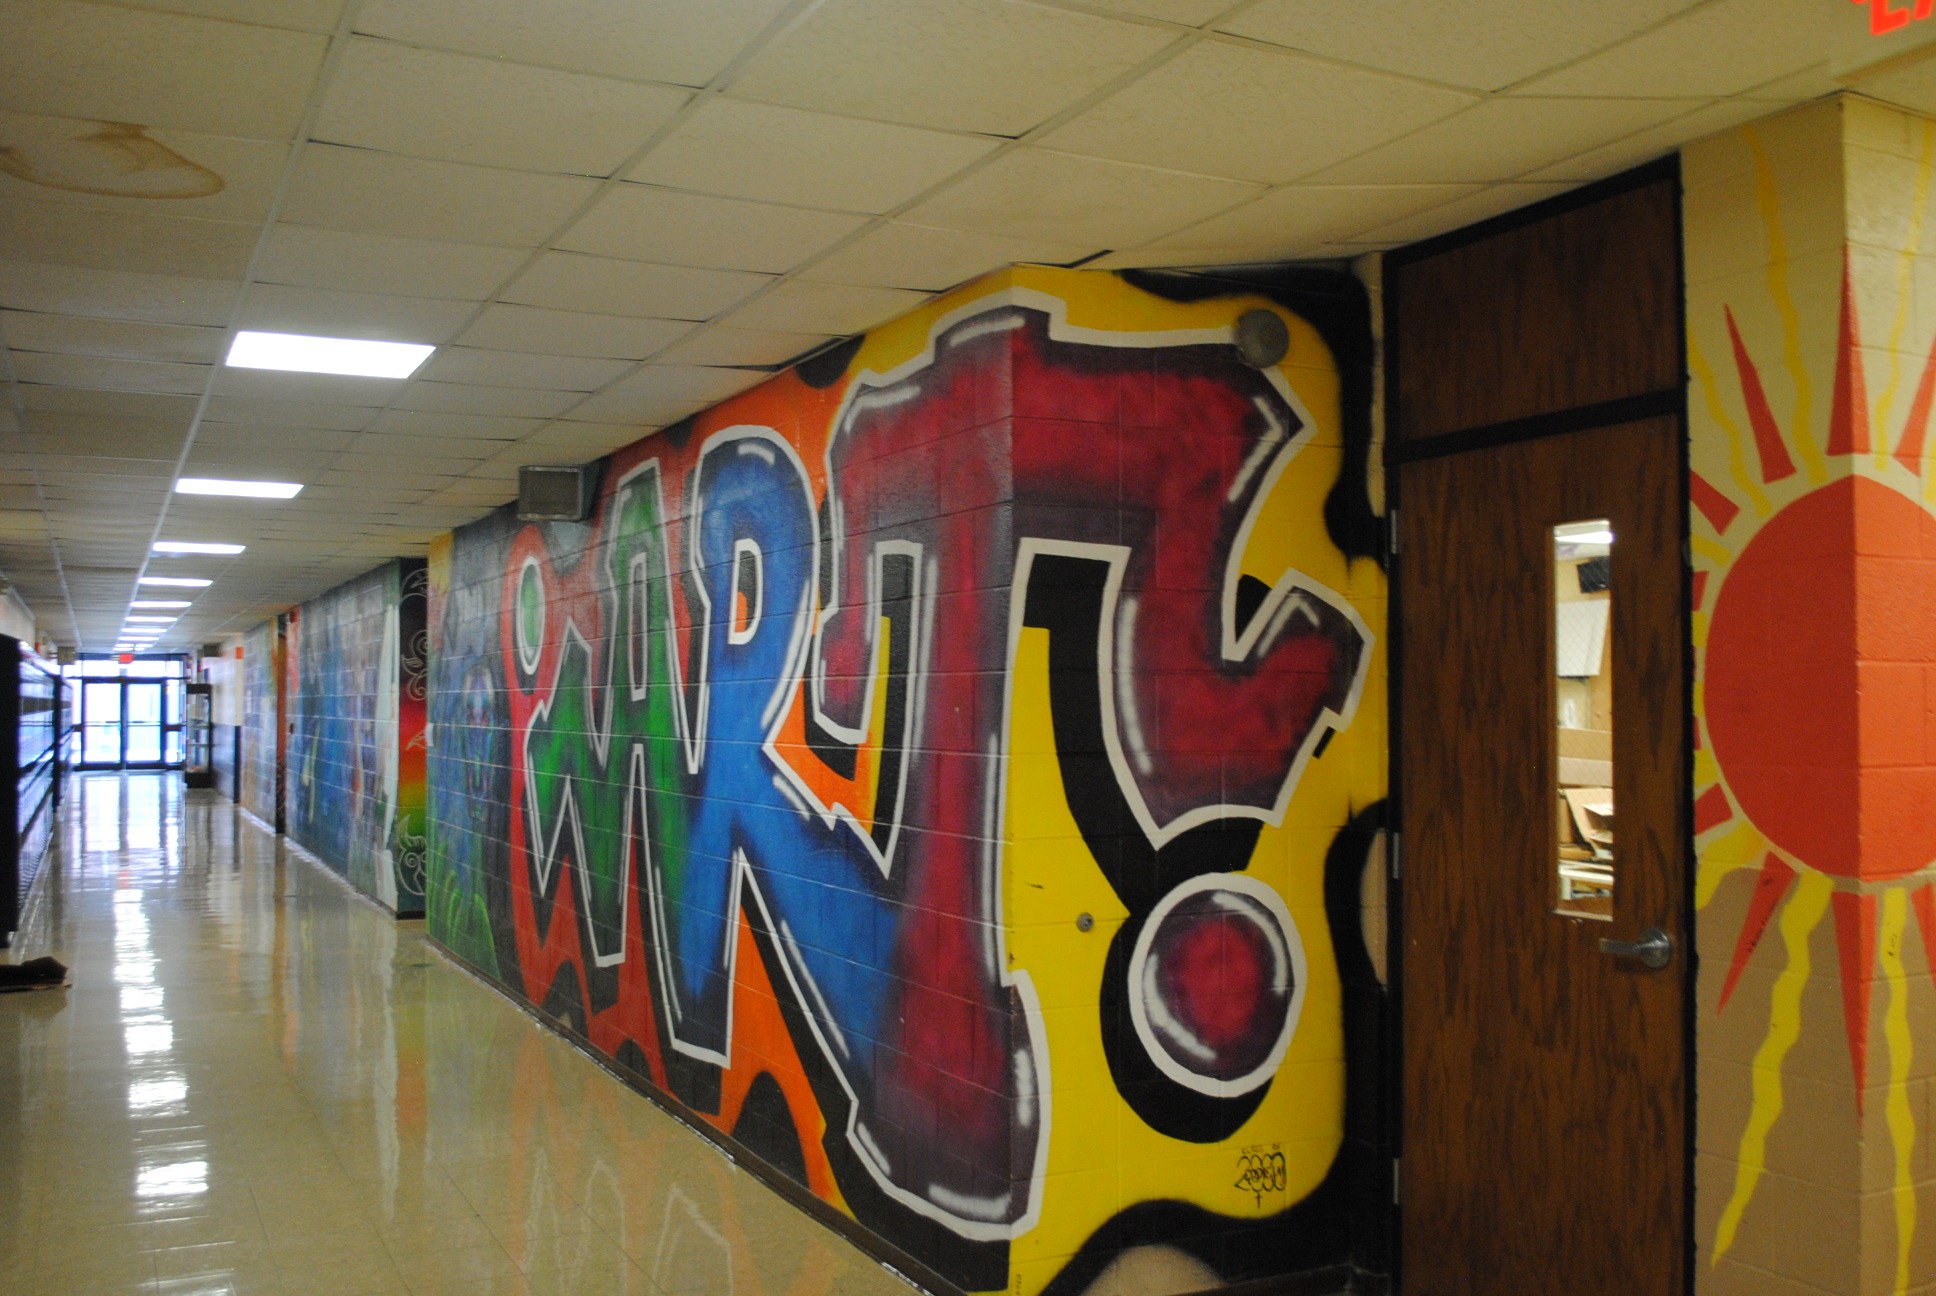 Murals make the hallway stand out